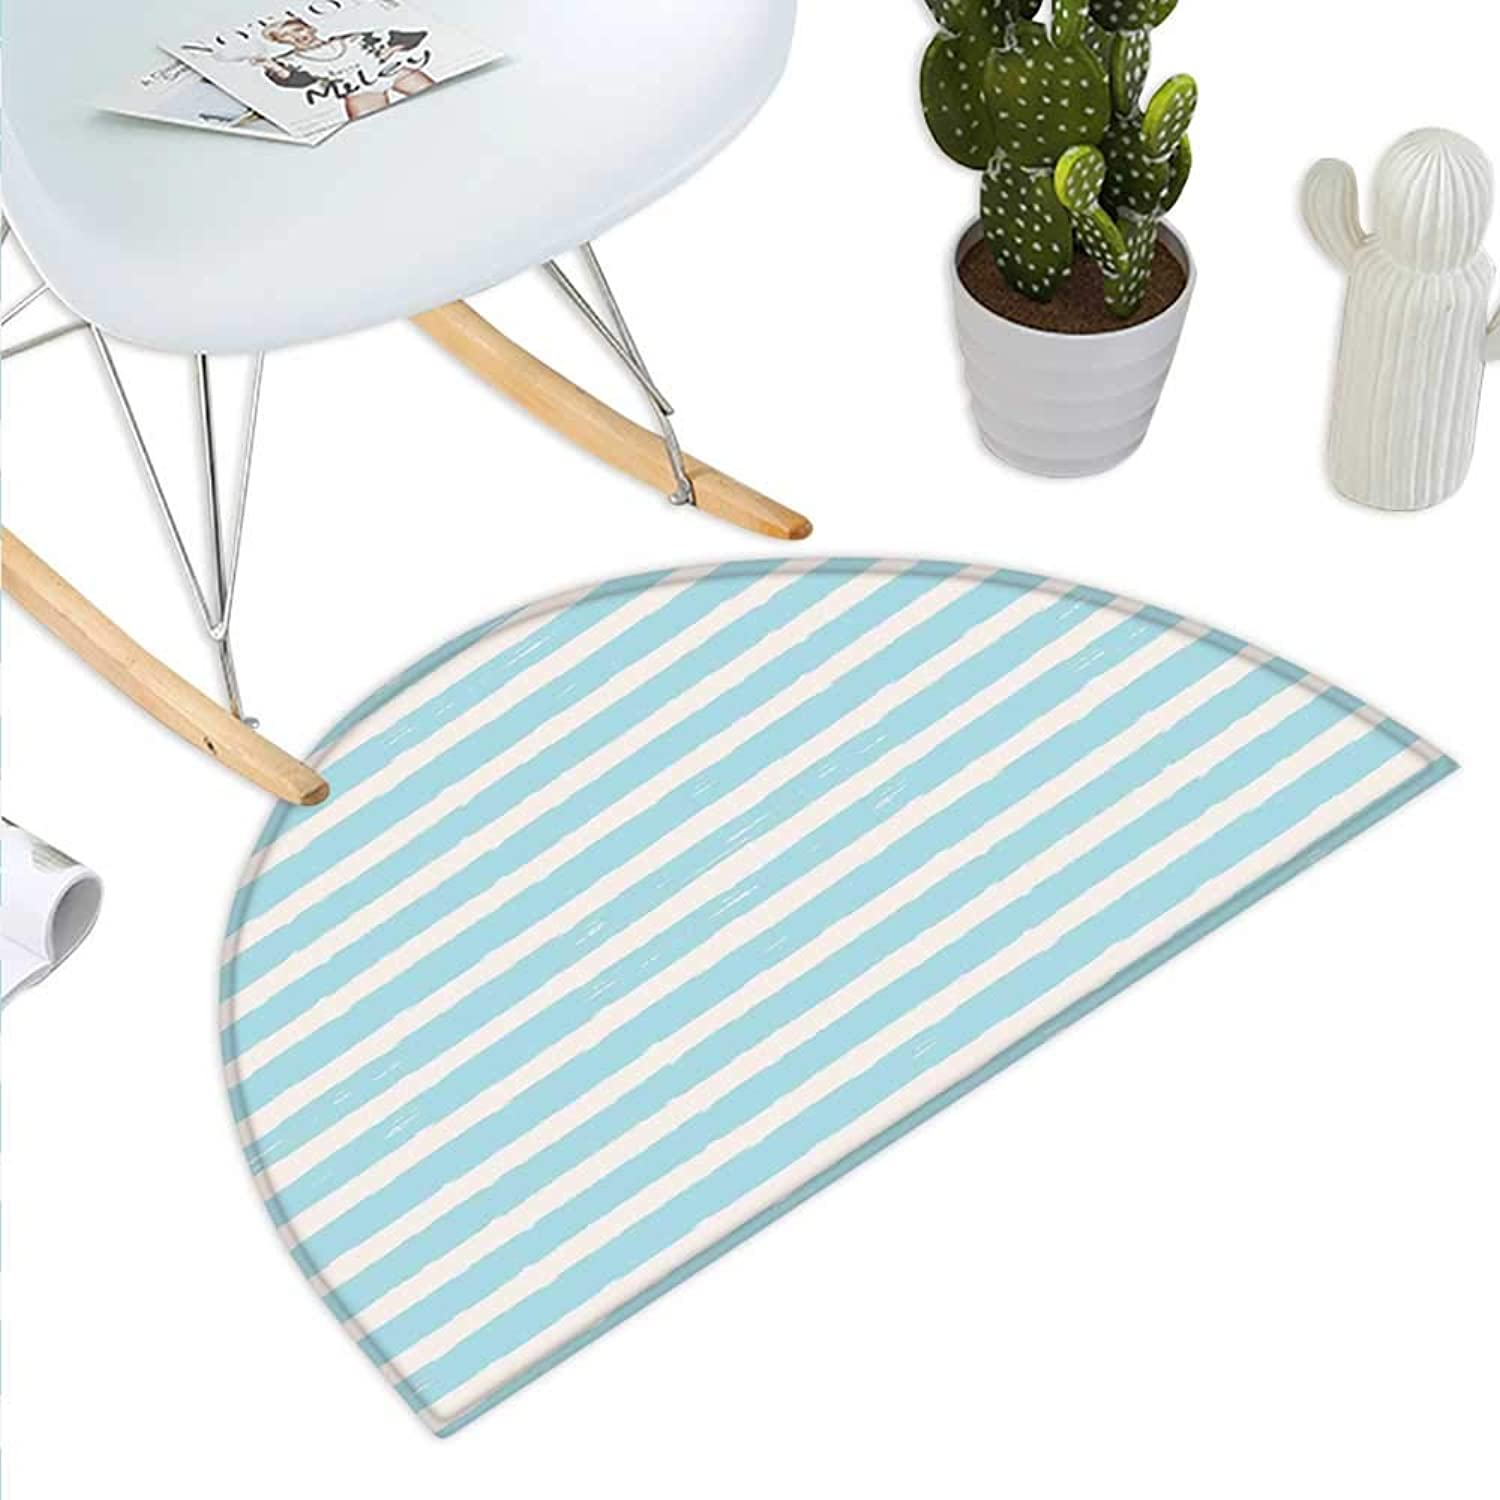 Kids Semicircle Doormat Horizontally Striped Pattern with Brushstrokes Grunge and Weathered Look Halfmoon doormats H 43.3  xD 64.9  Pale bluee and Off White